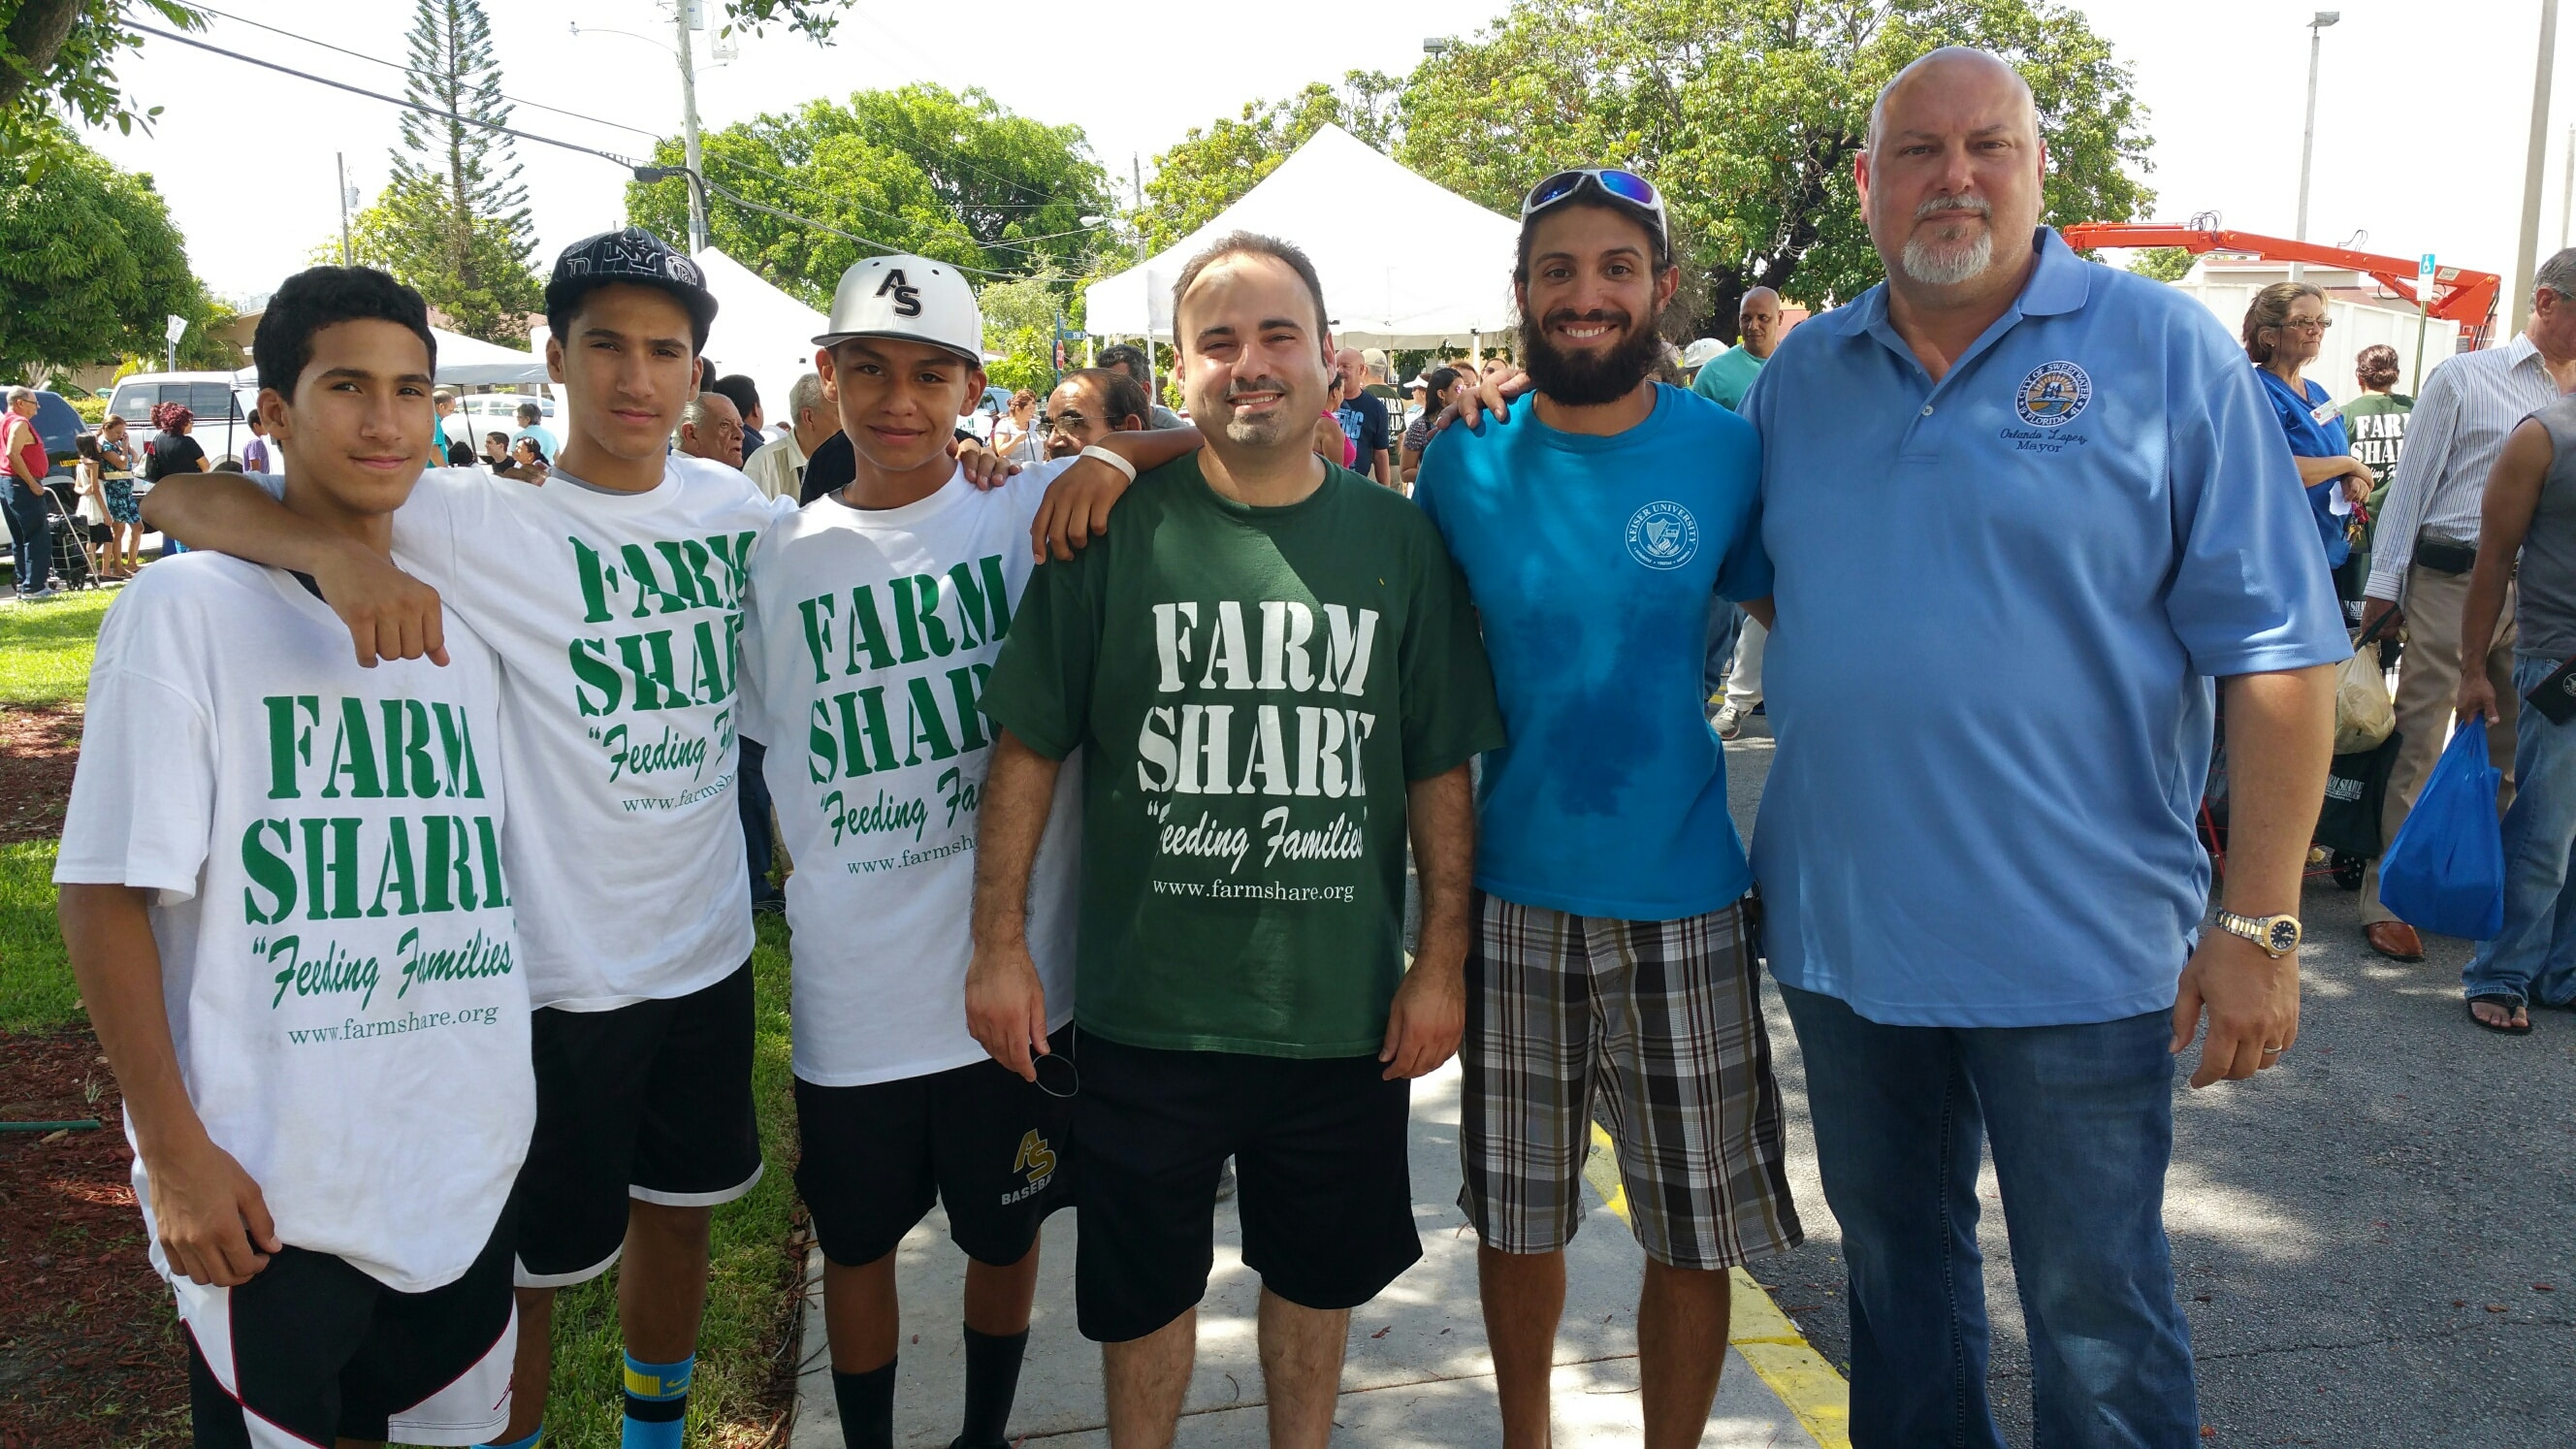 Miami Students Participate in Farm Share